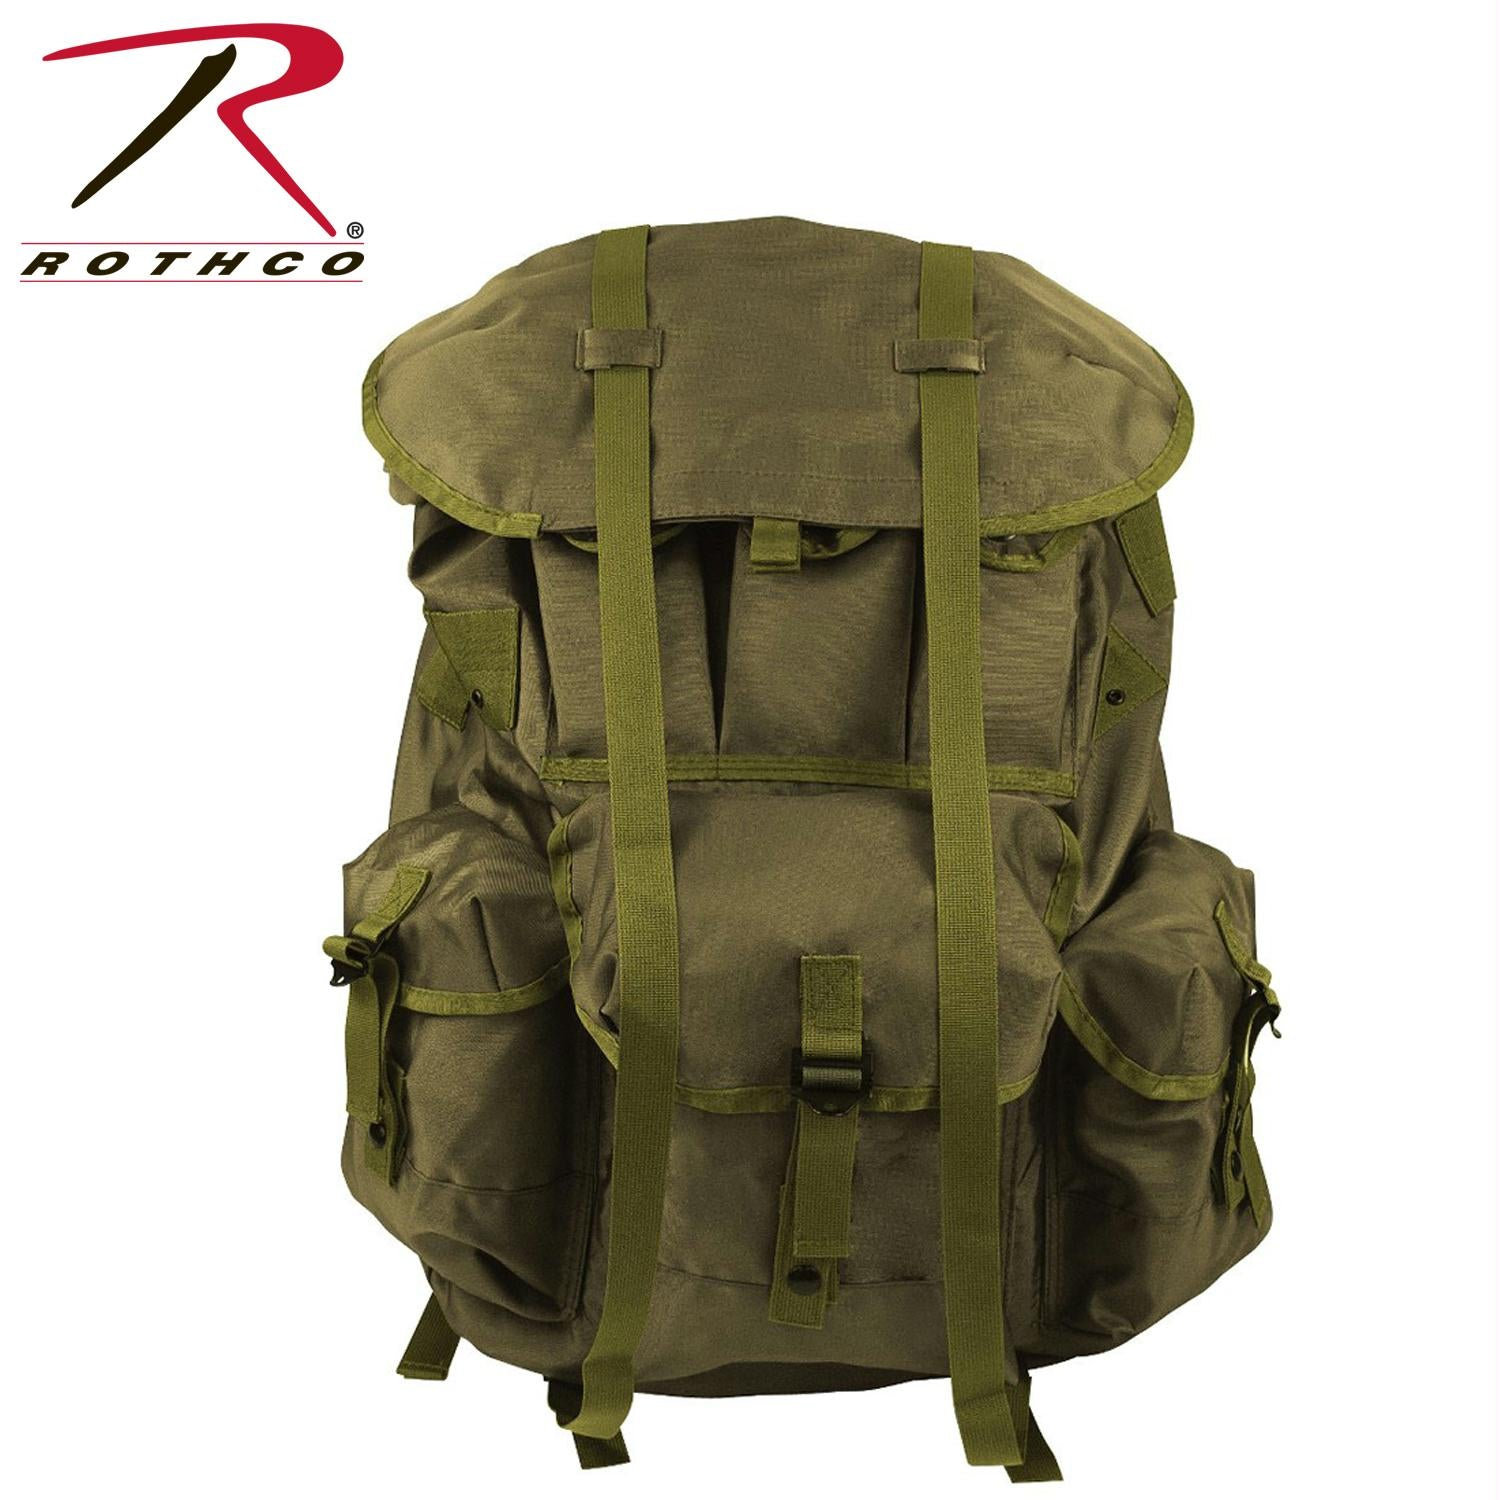 Rothco G.I. Type Large Alice Pack - Olive Drab